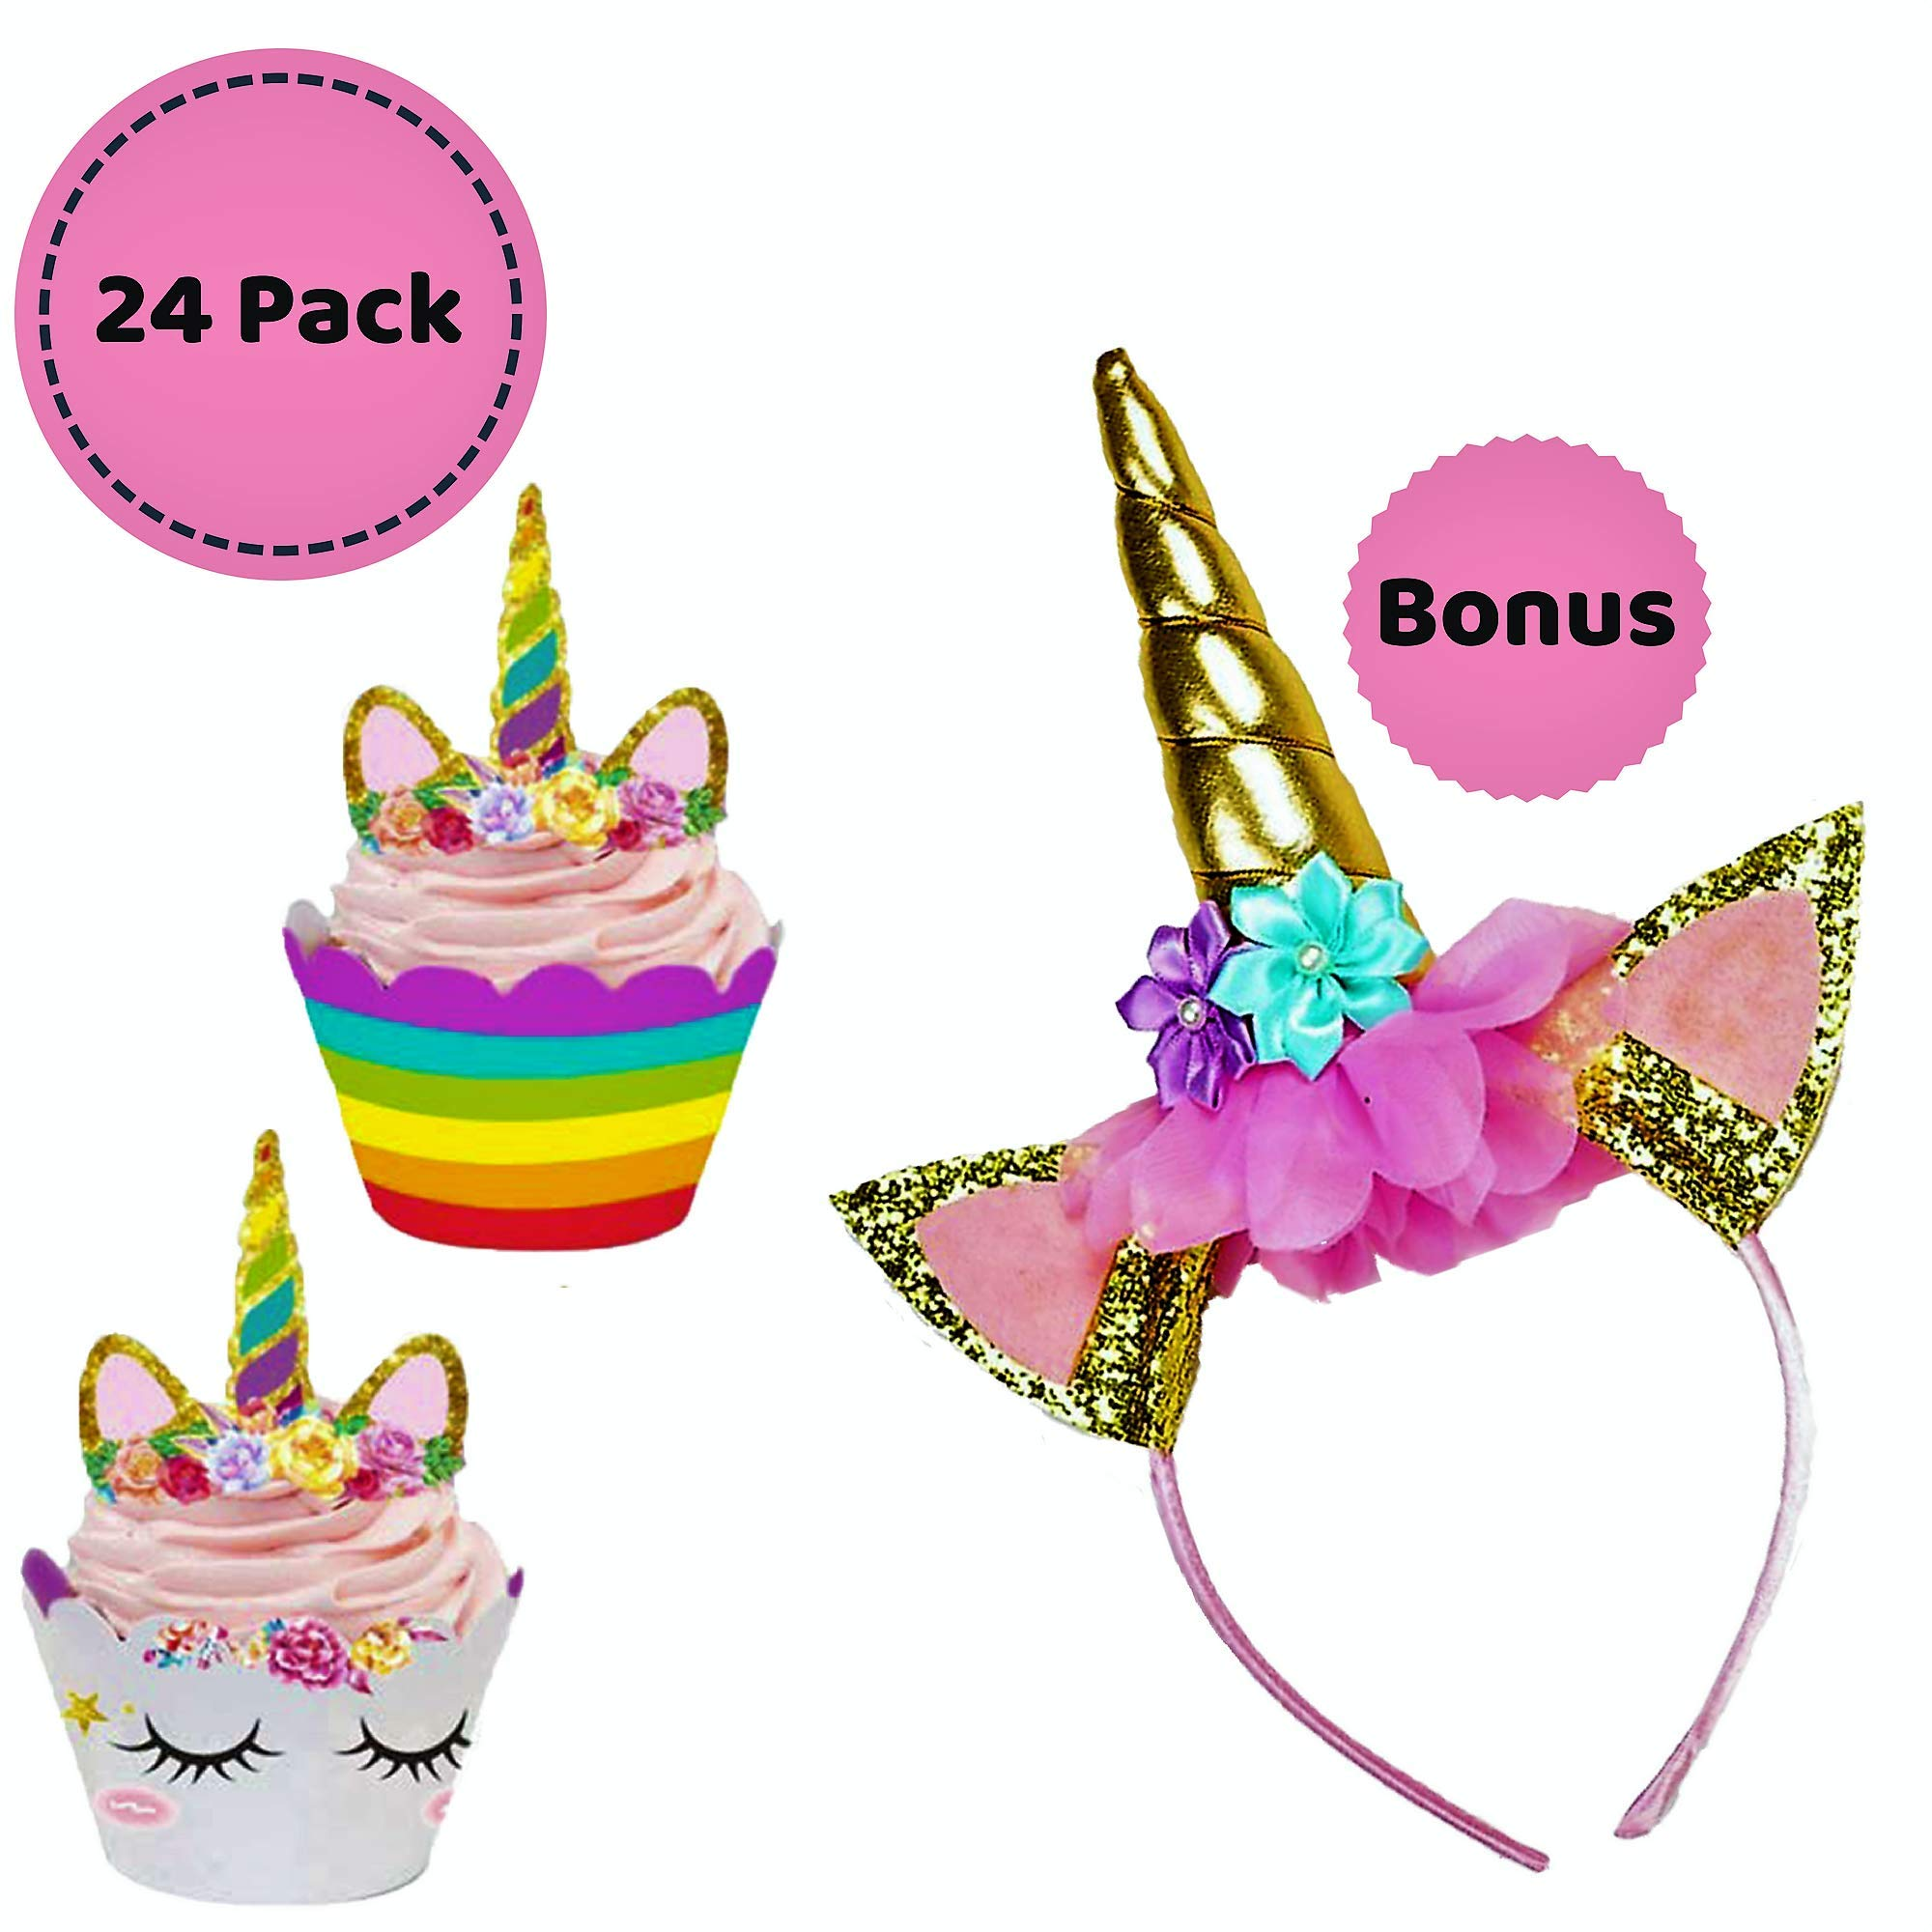 Unicorn Cupcake Topper | Double-Sided Toppers & Wrappers, Ideal Set for Girls Birthday Party | Including a FREE Magical Unicorn Hairband